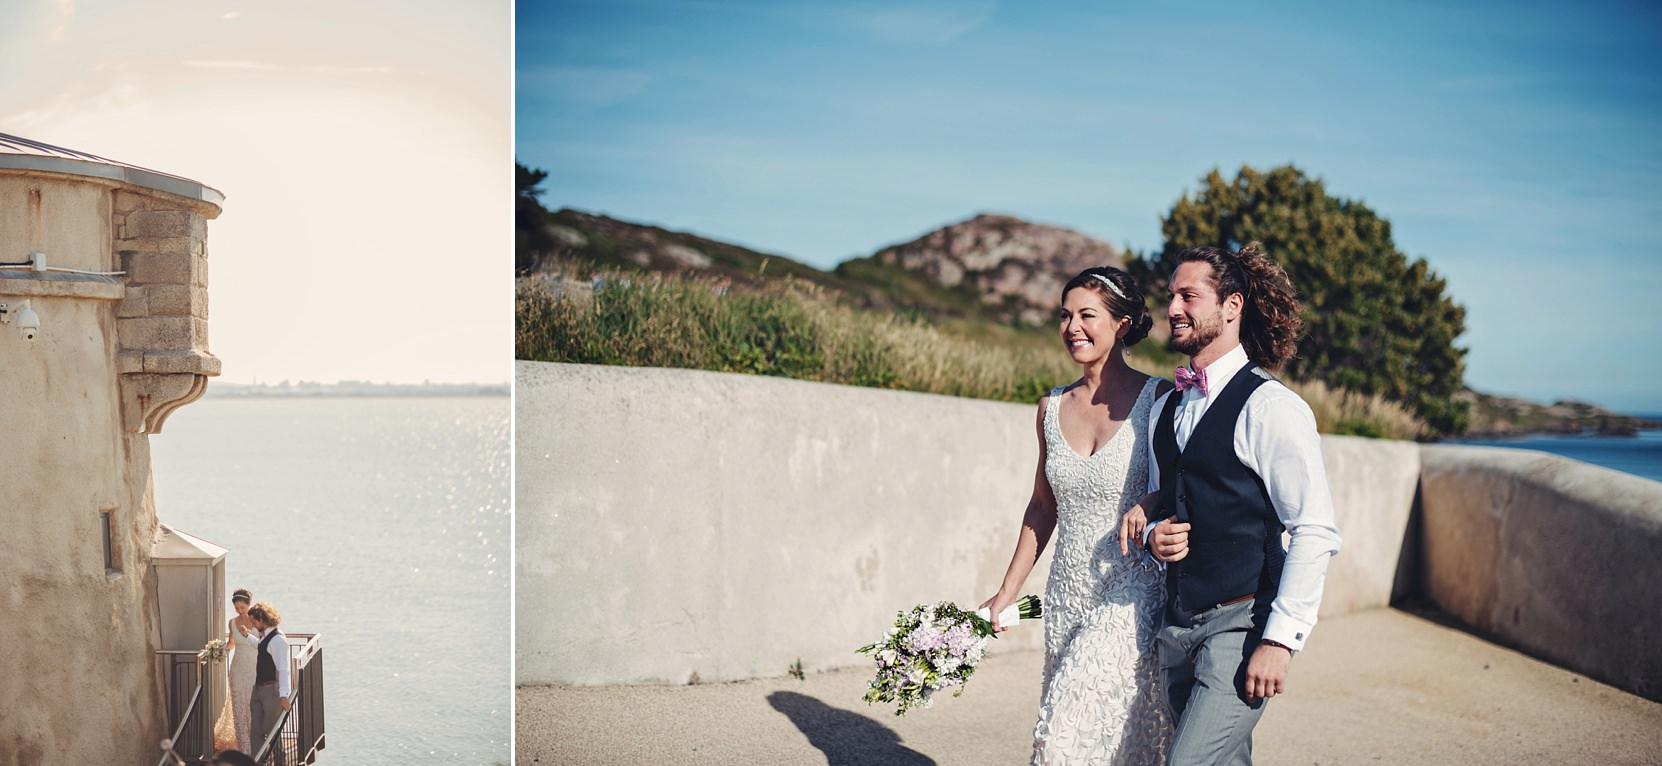 Irish-Destination-Wedding-Photographer_0089